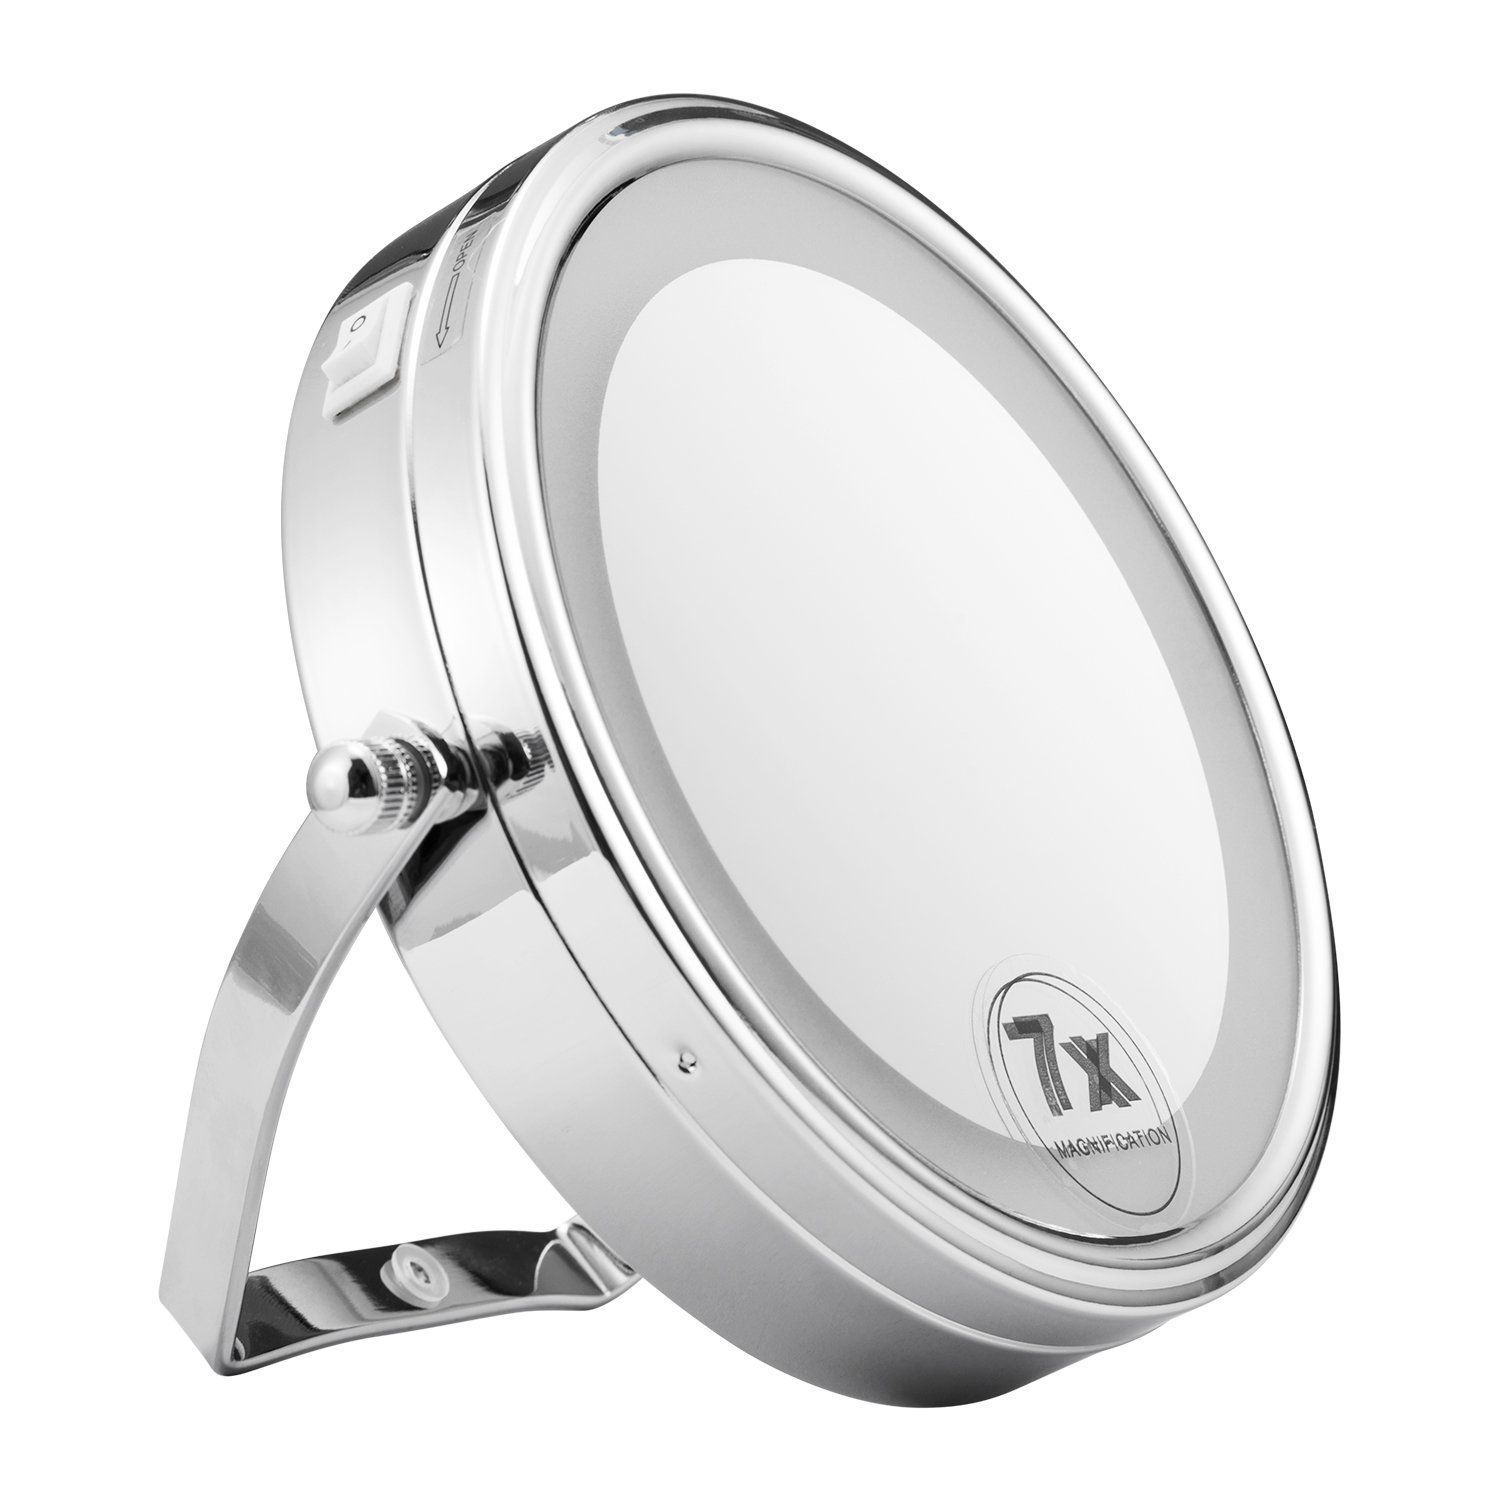 8Inch Lighted Wall Mount Makeup Mirror w/ 5x